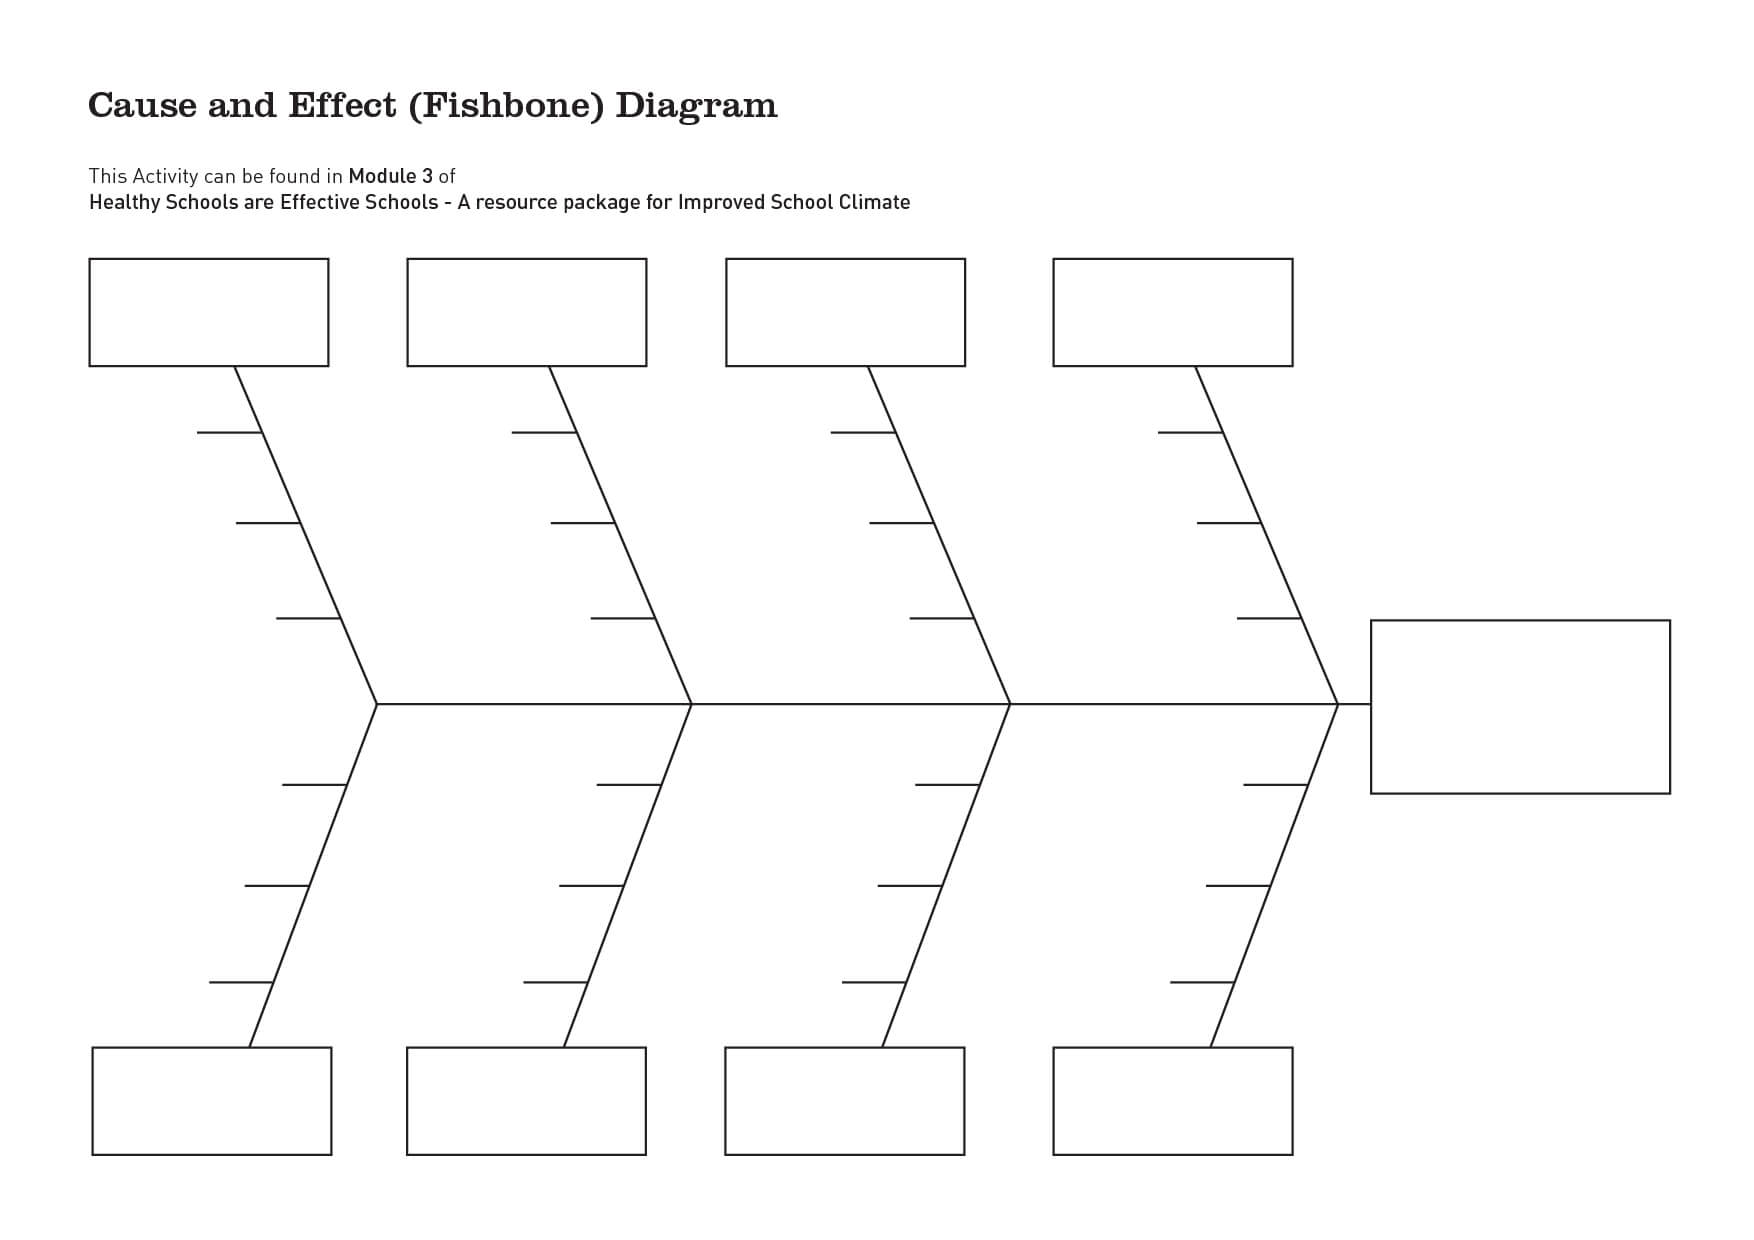 010 Template Ideas Cause And Effect Fishbone Diagram 179676 In Blank Fishbone Diagram Template Word